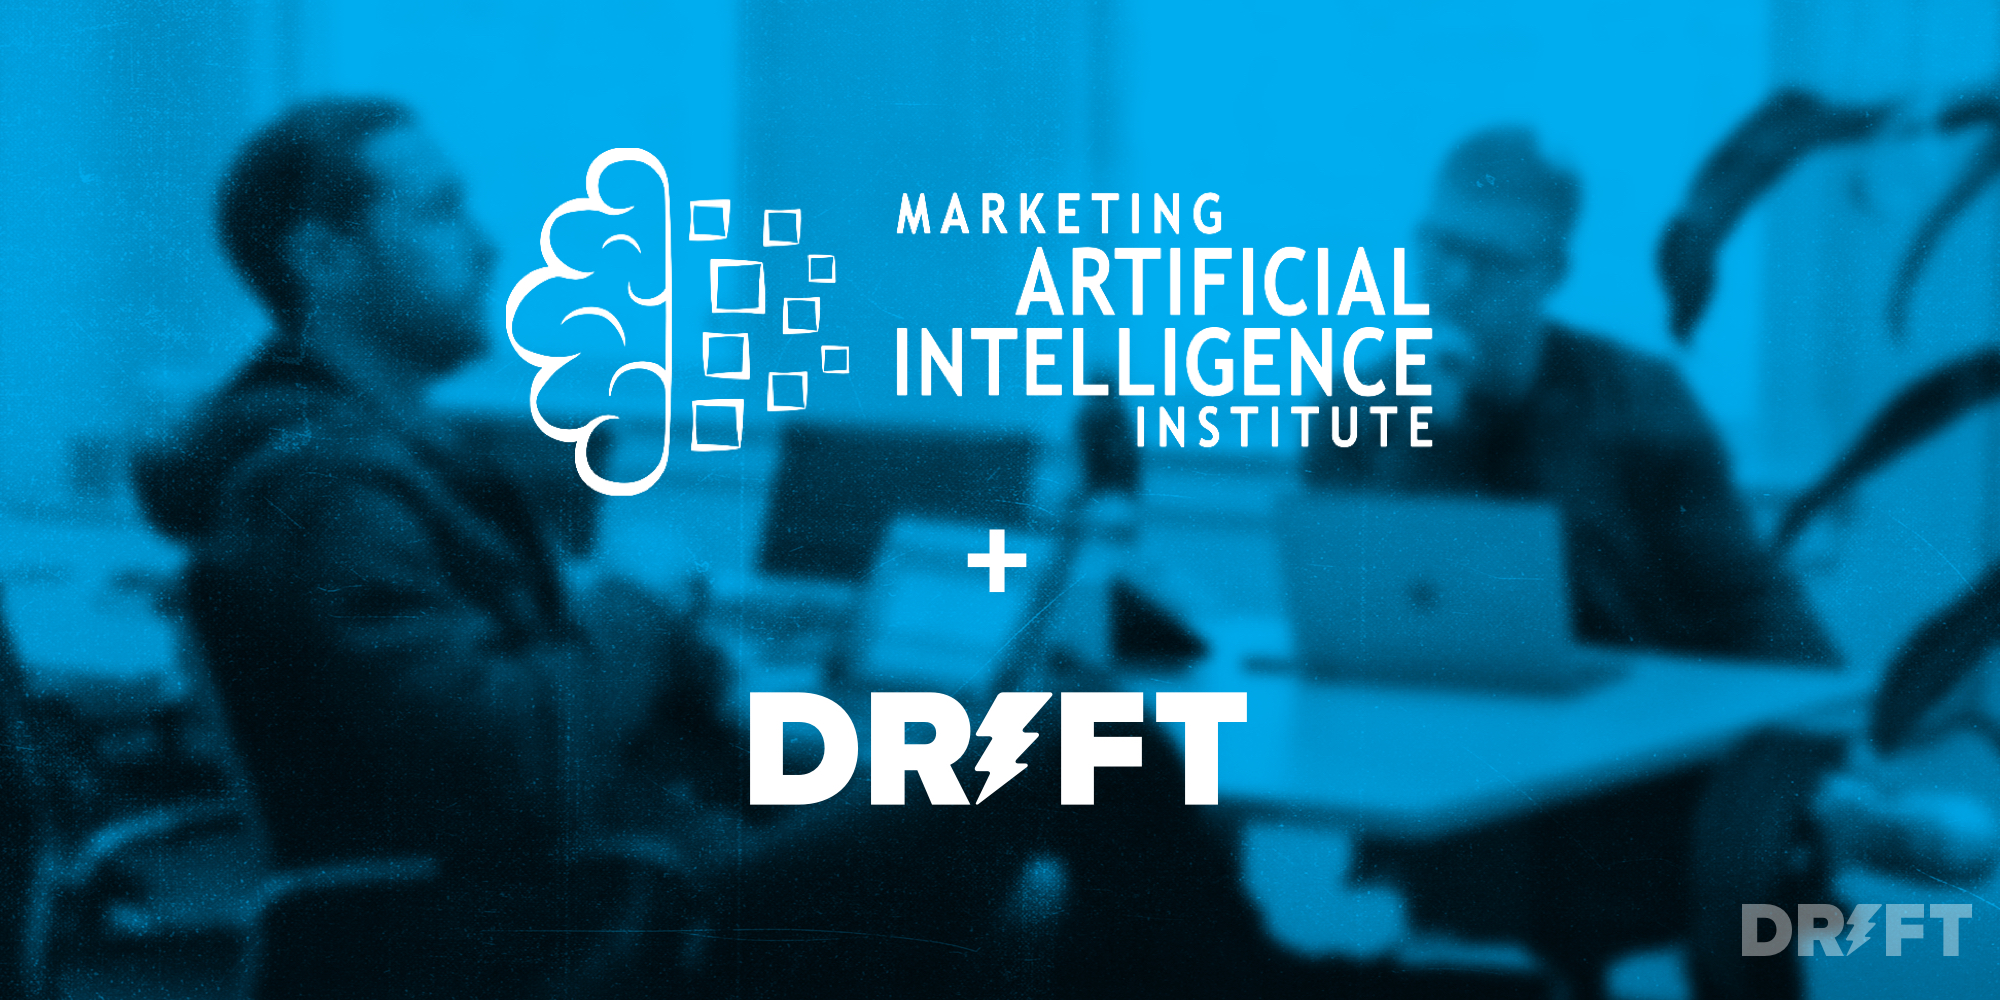 Marketing AI Institute Drift Survey